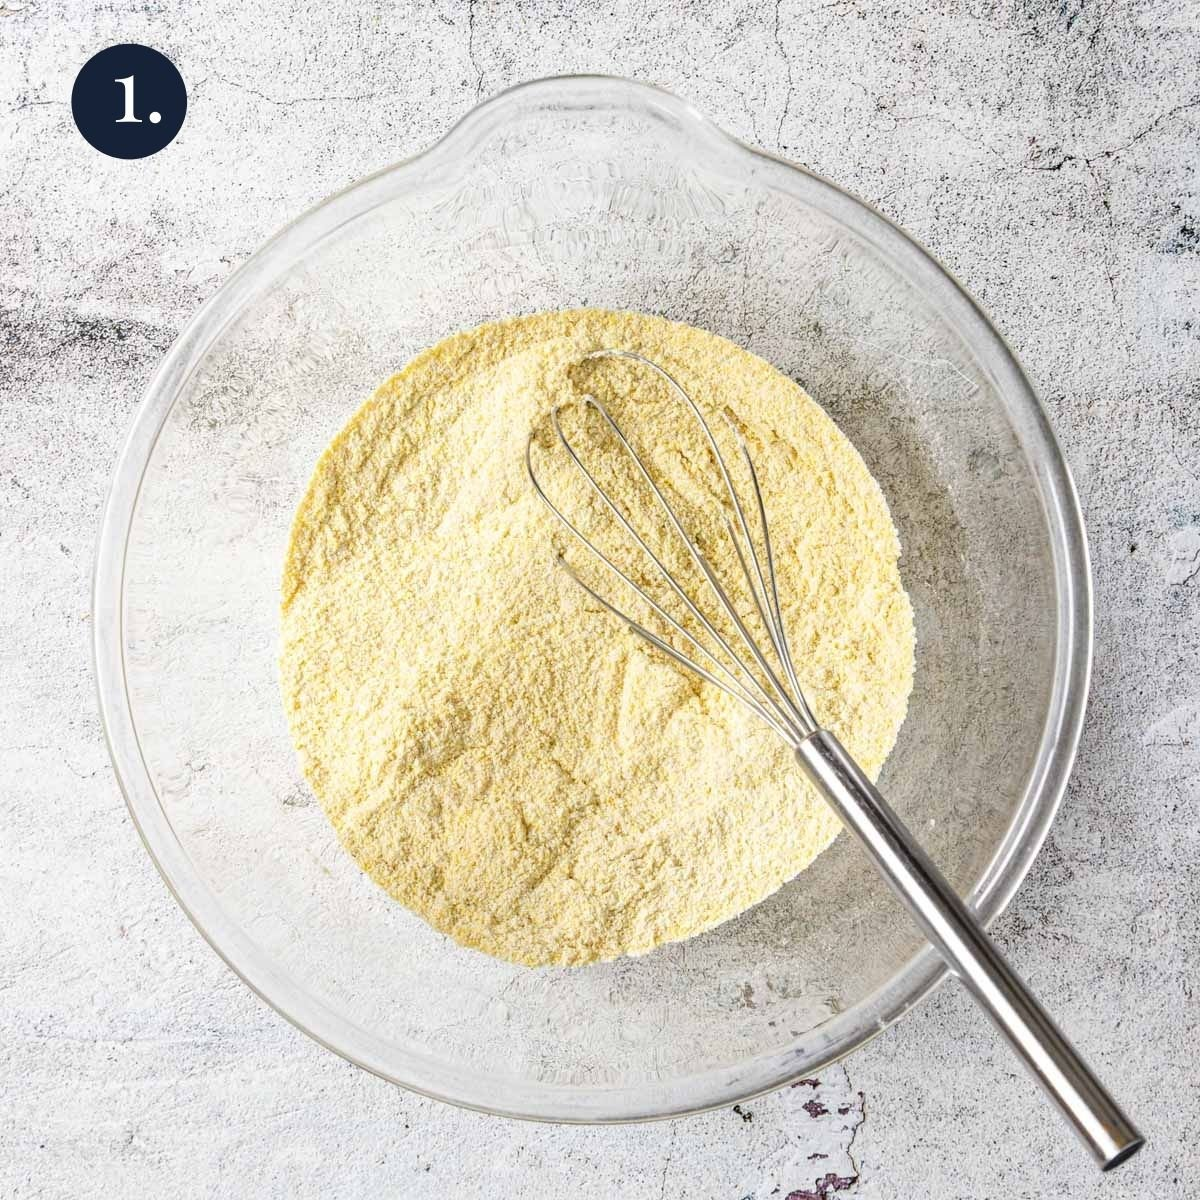 Dry ingredients mixed together in a bowl with a whisk